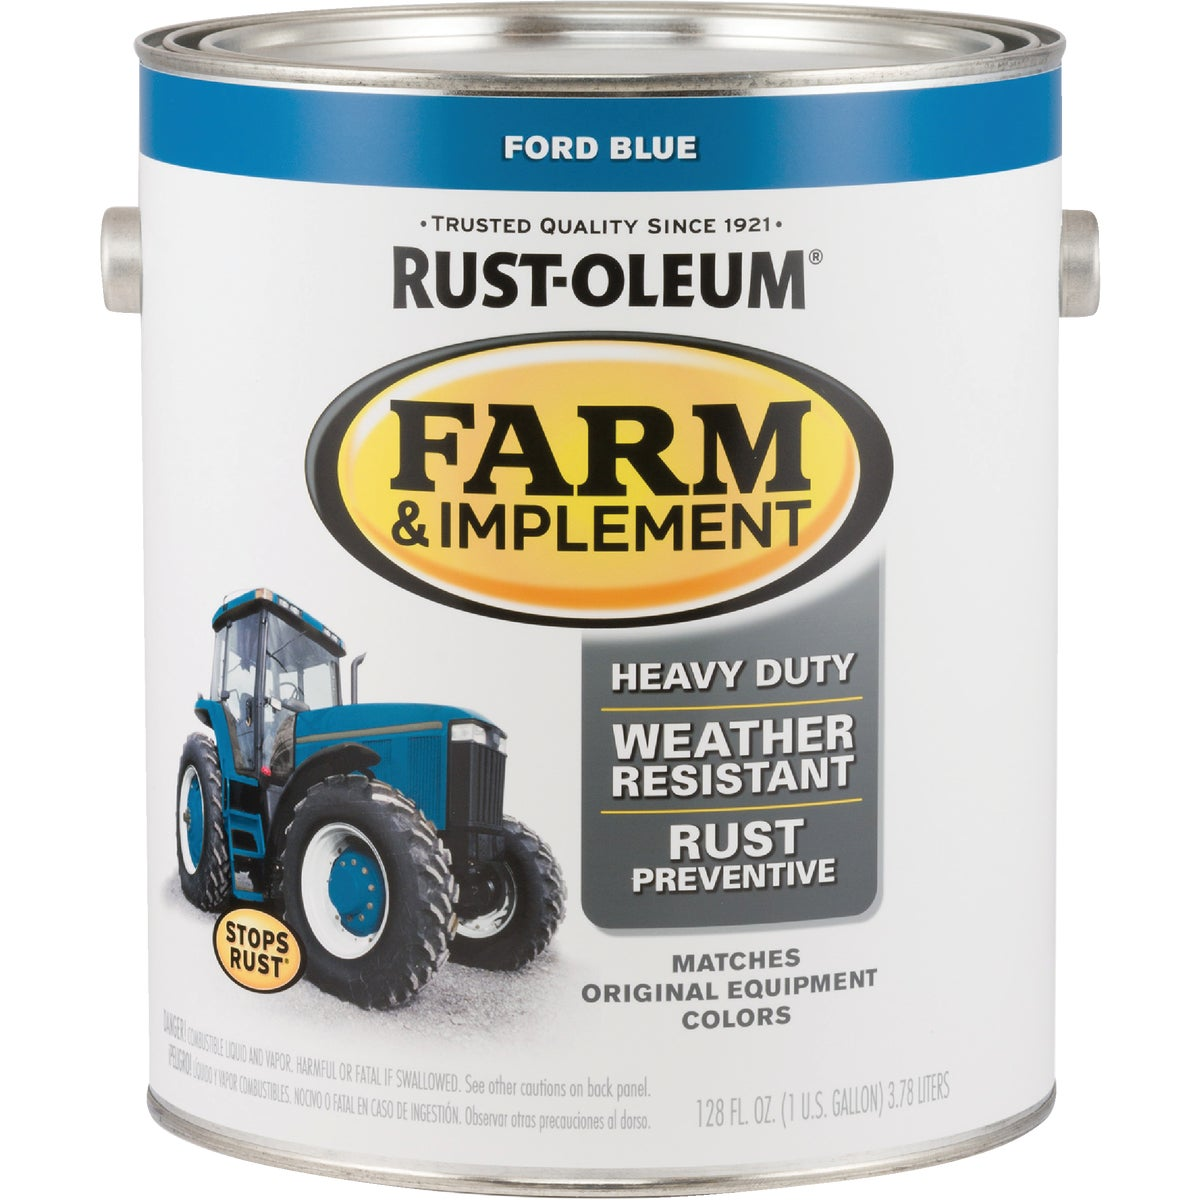 FORD BLUE IMPLMNT ENAMEL - 7424-402 by Rustoleum